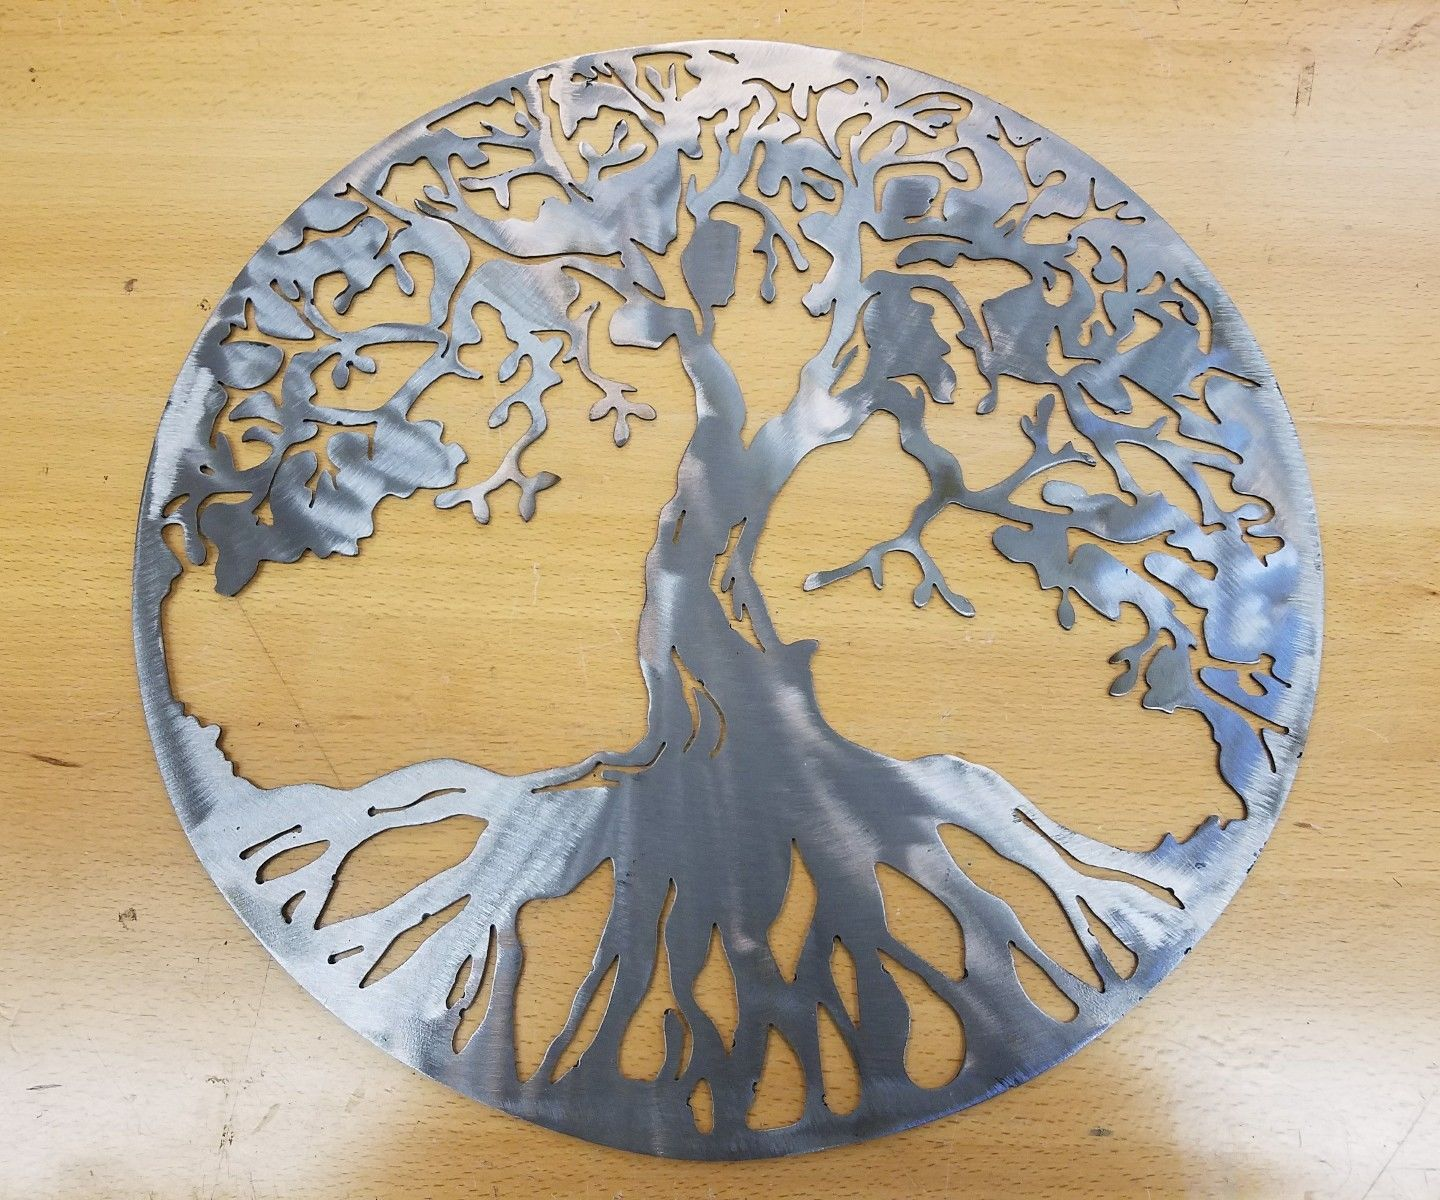 Tree of life metal wall art plasma cut decor gift idea mother\'s day ...